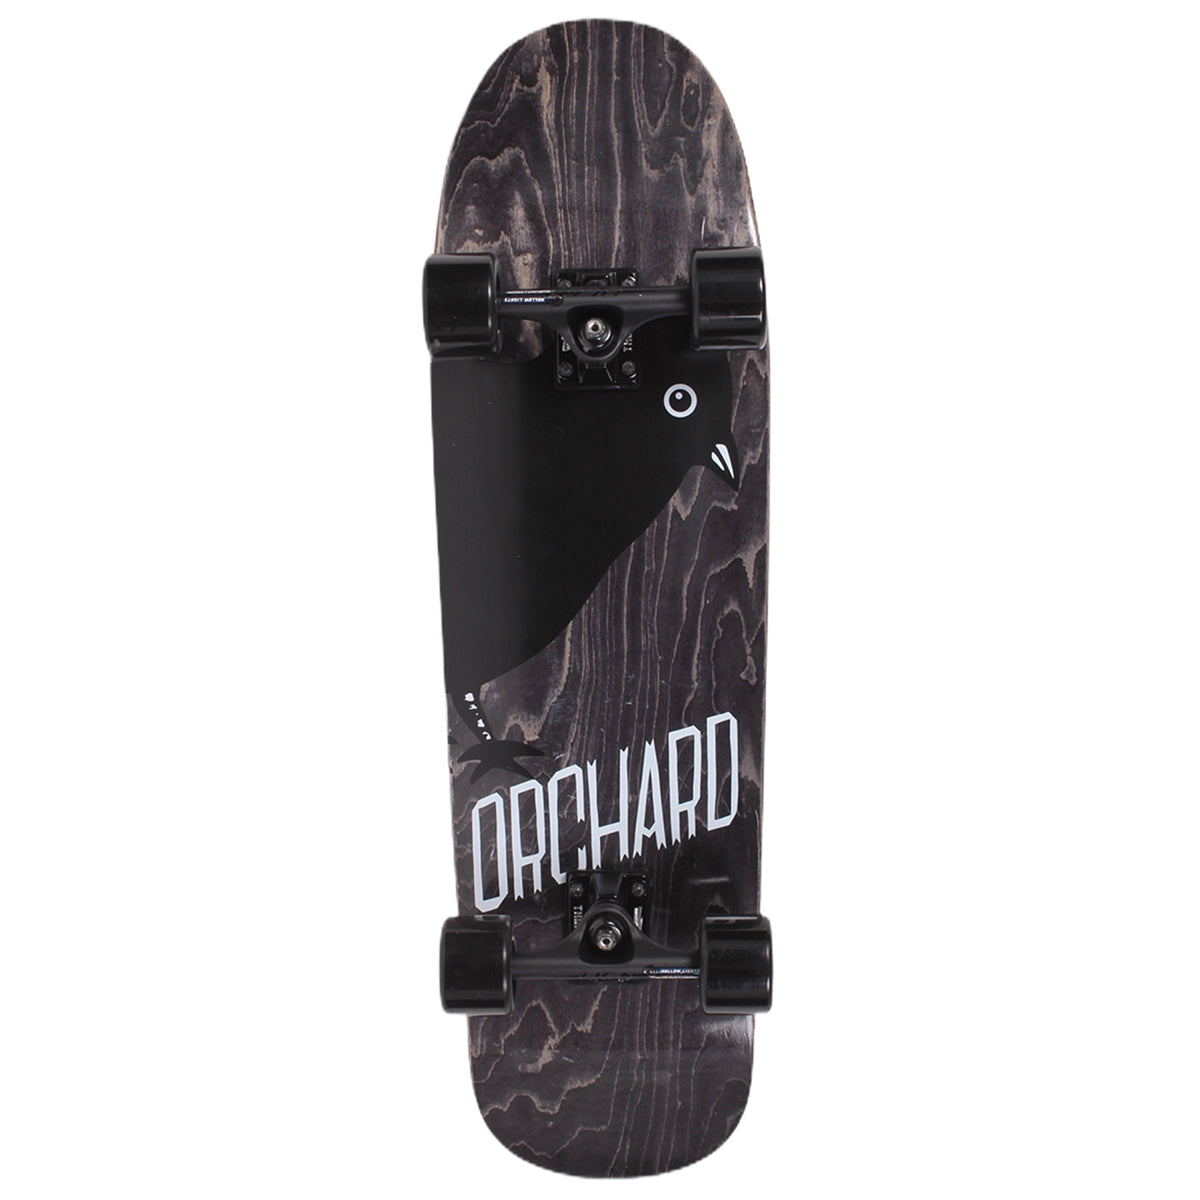 Orchard Assembled Cruiser Complete Bird Blackout Drippy Shape 9.1